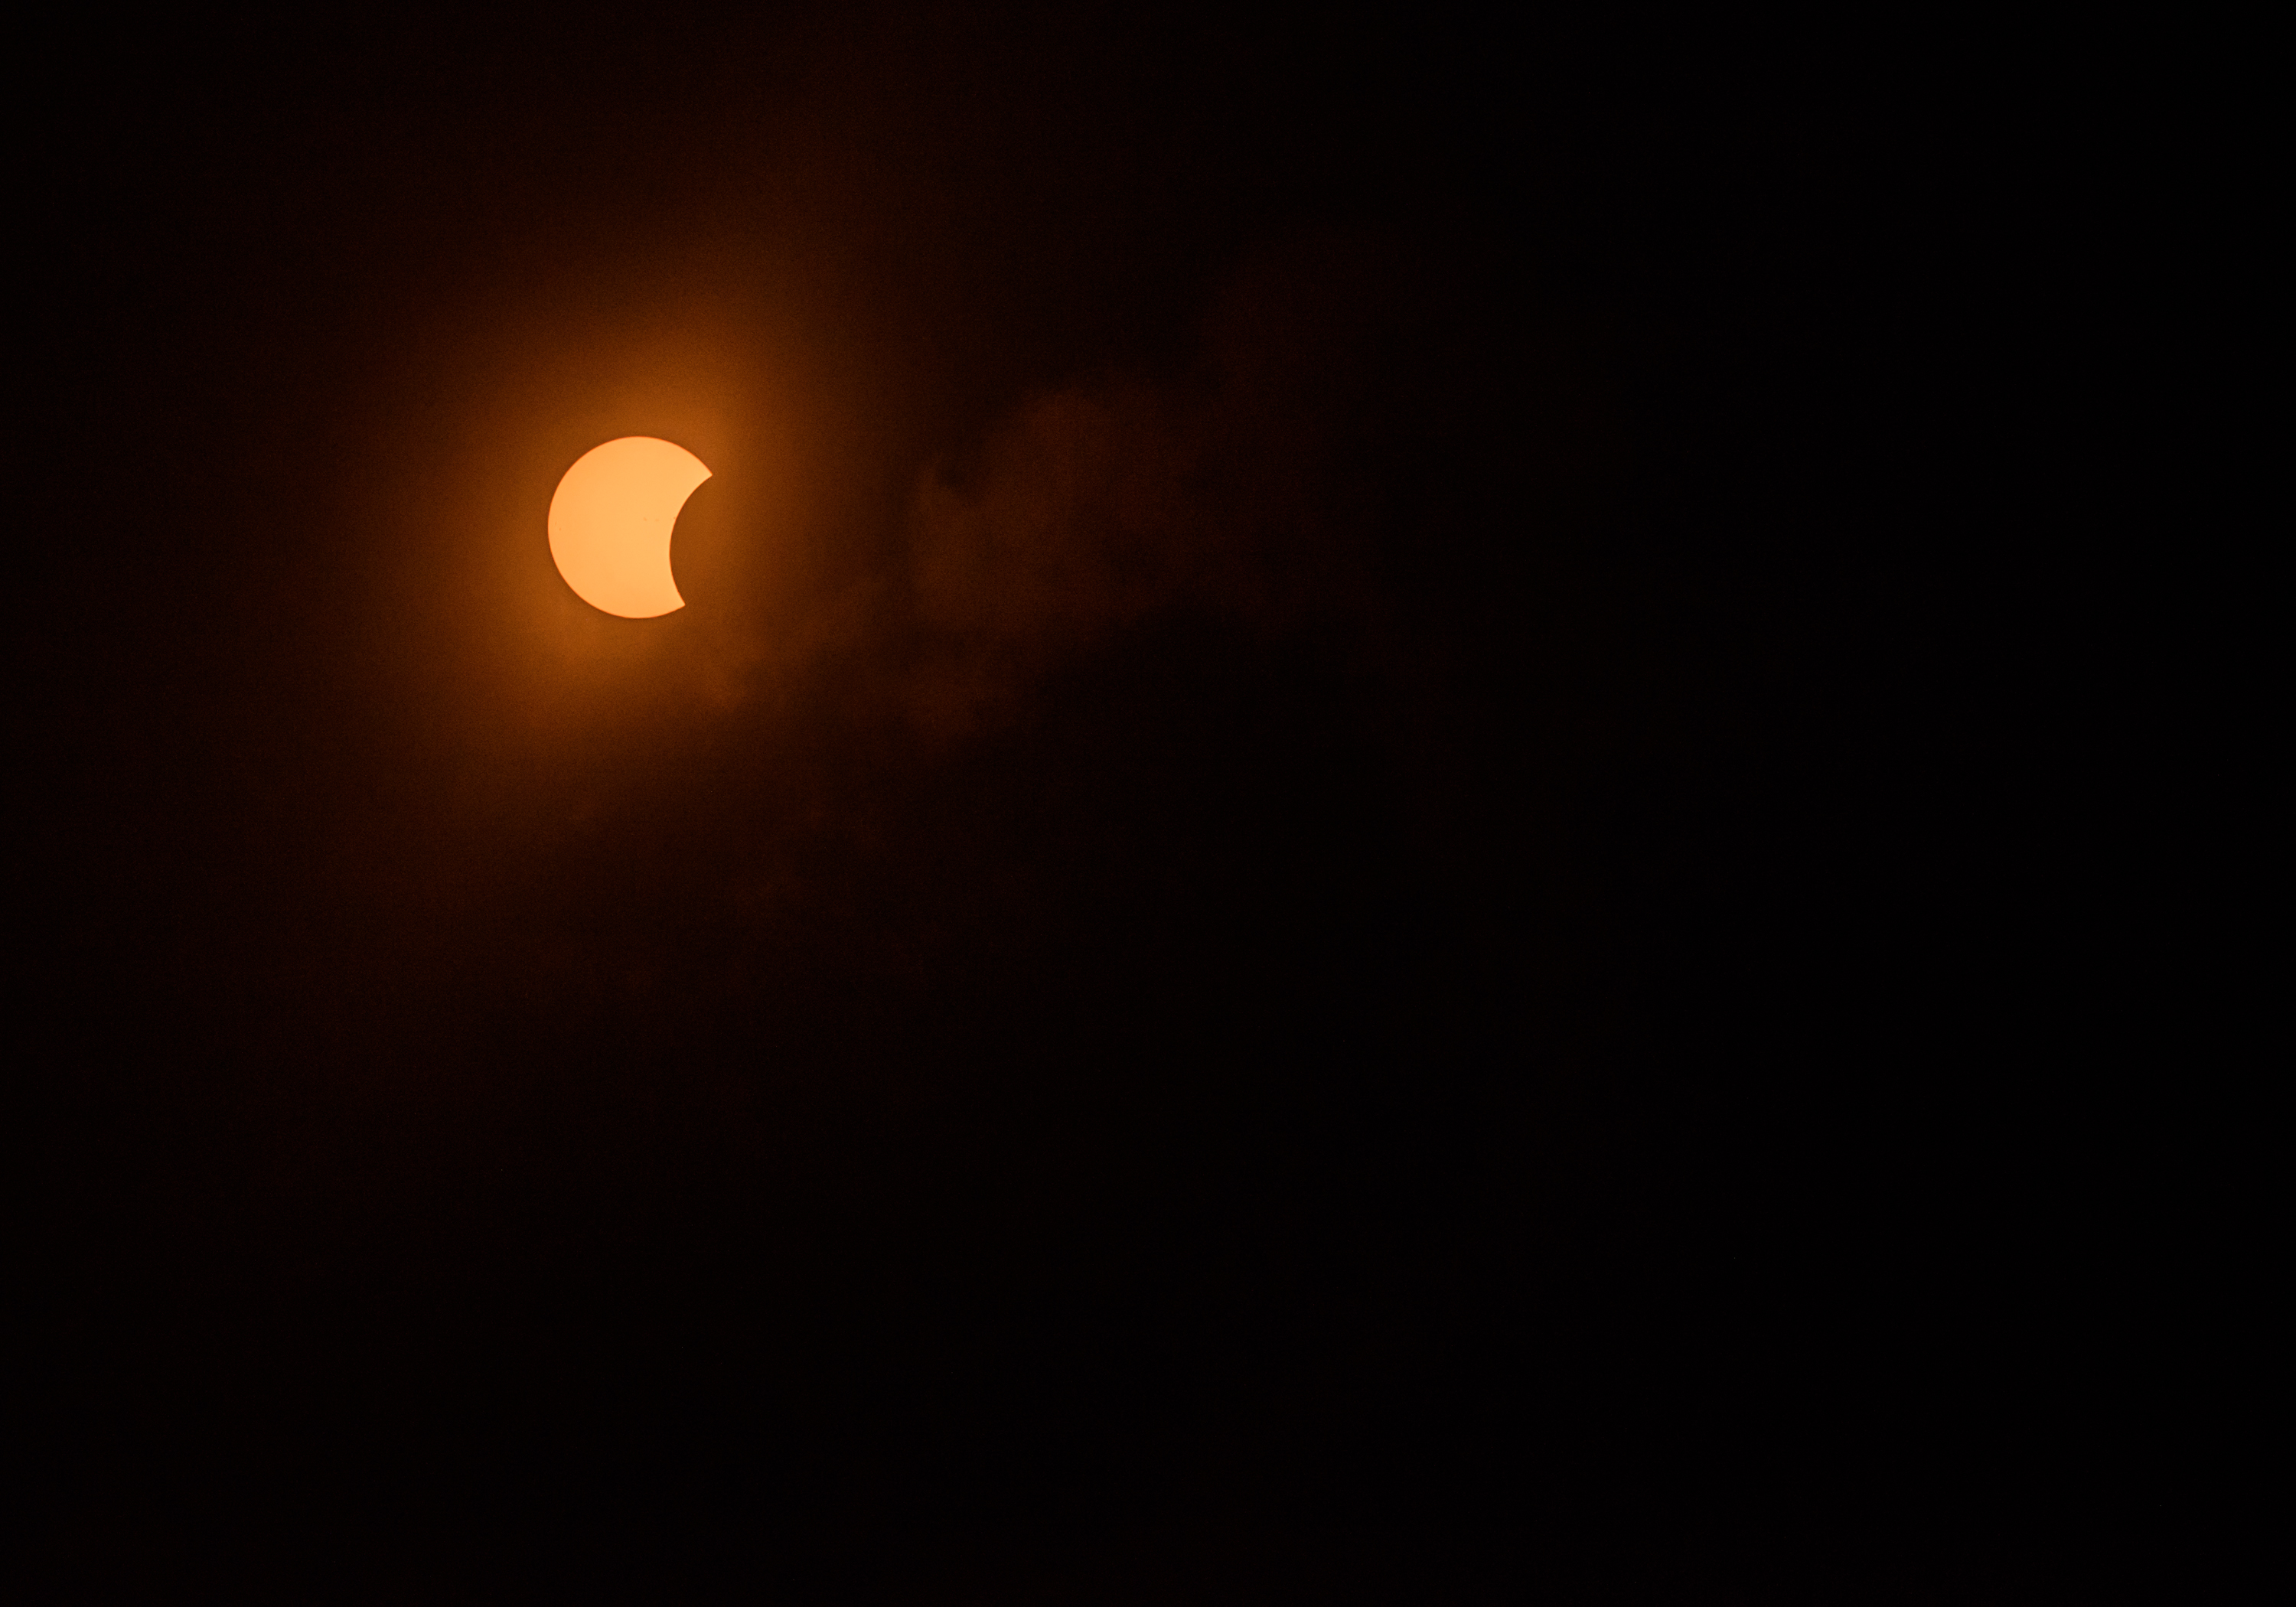 The solar eclipse is seen on August 21, 2017 in New York City.